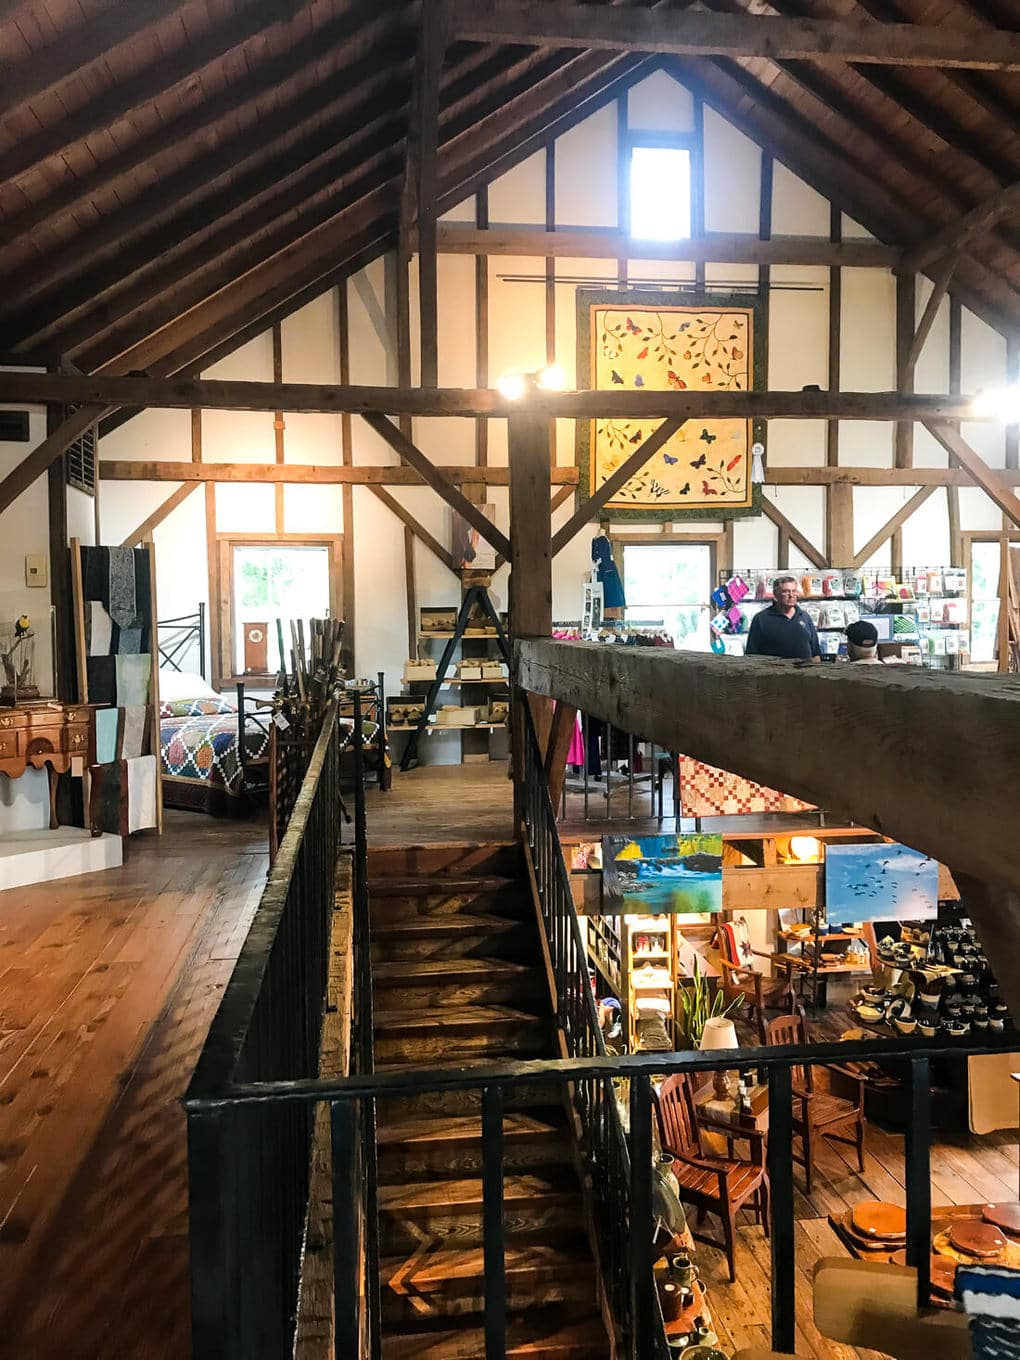 Where to shop in Waco Texas - the Heritage Homestead shops